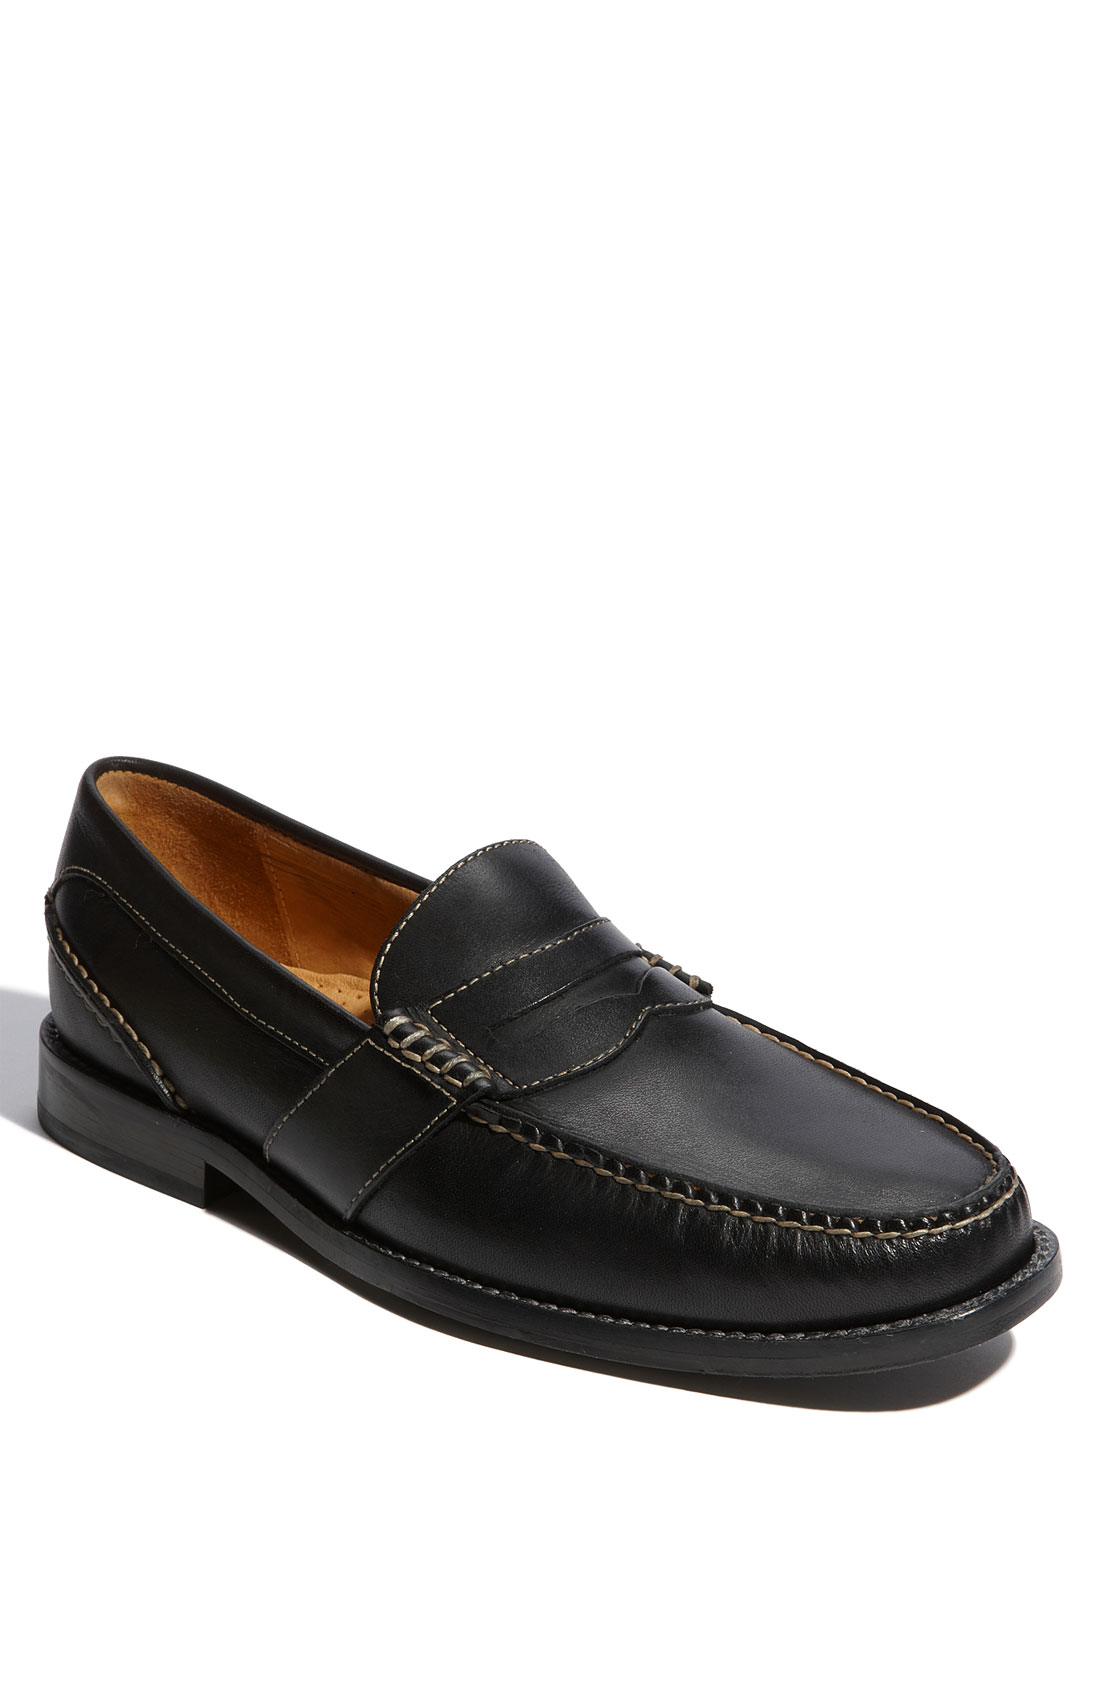 Sperry Top Sider Gold Cup Dress Casual Penny Loafer In